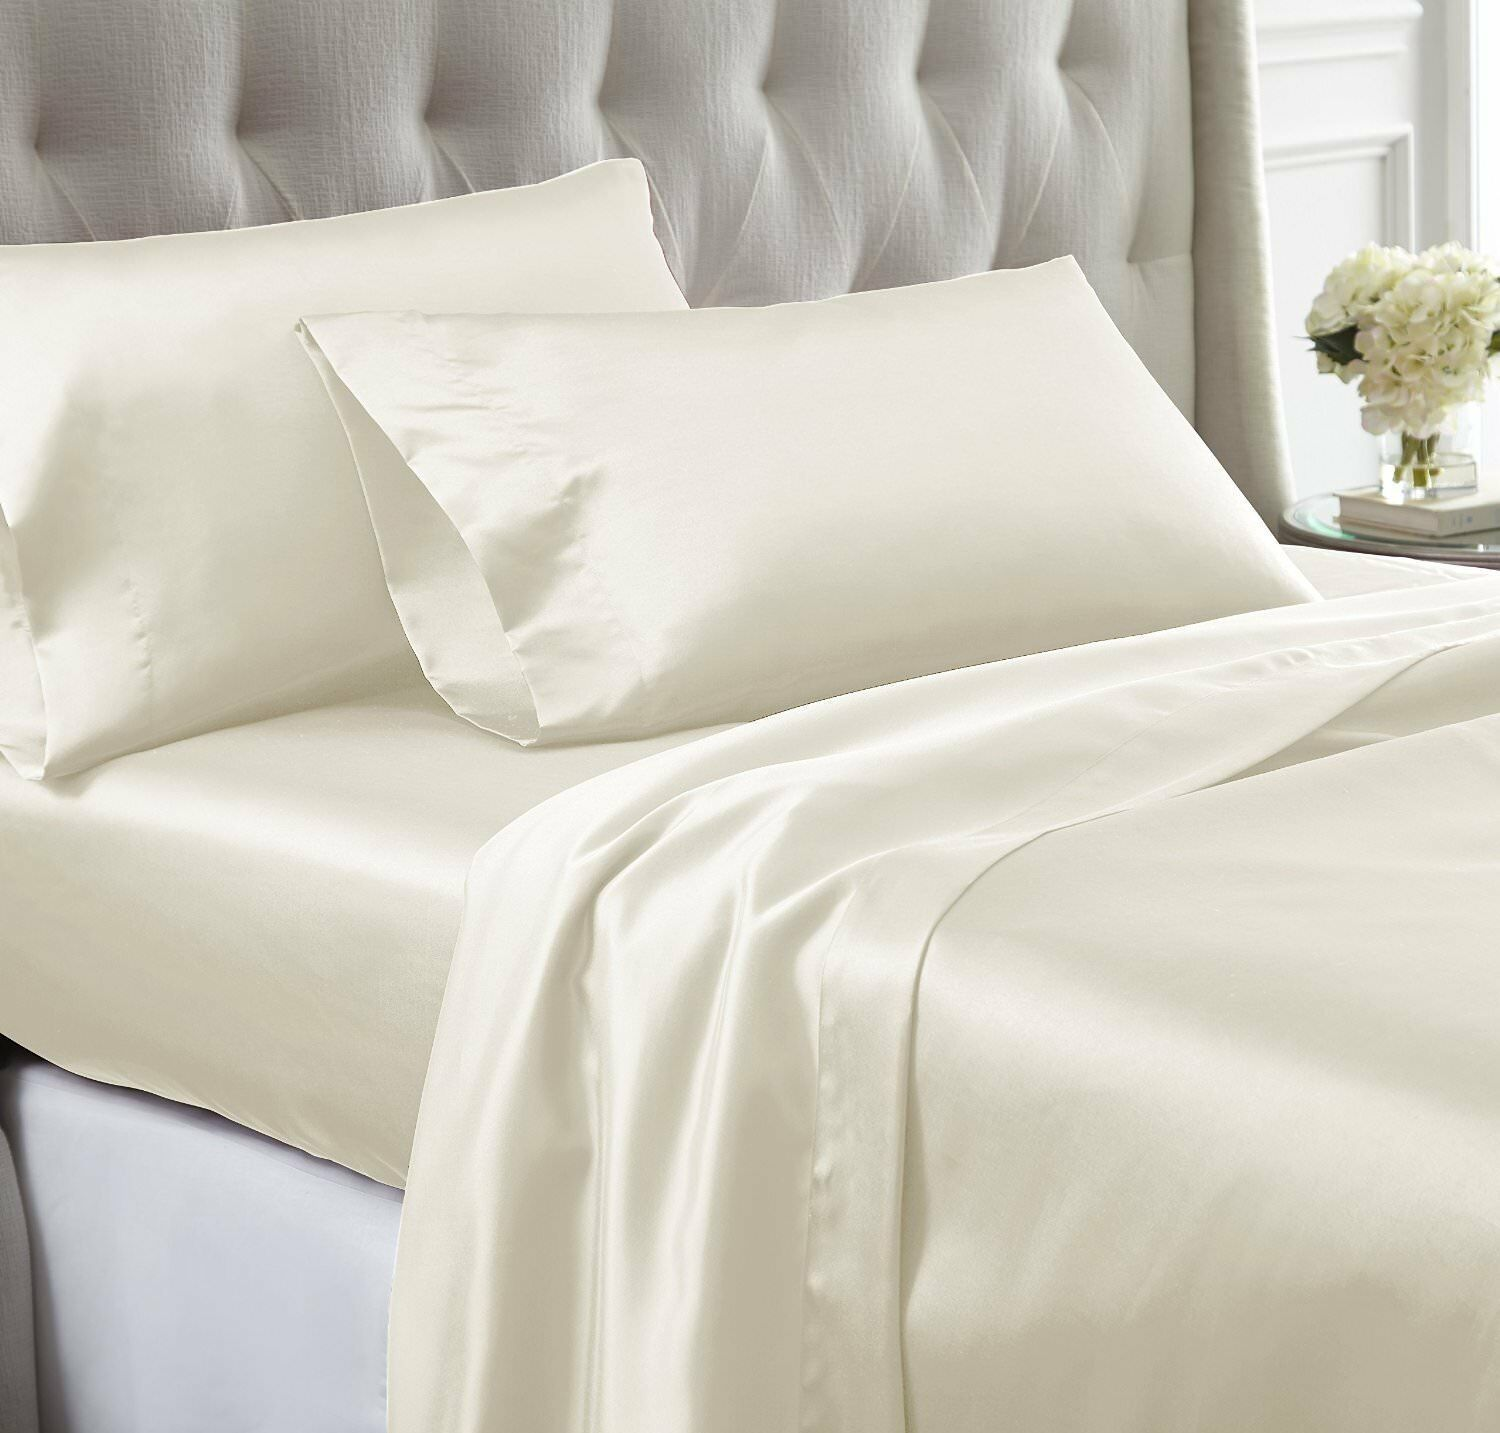 MODERN PURE COTTON LUXURIOUS BEDDING SET ALL SIZE IVORY SOLID 600 THREAD COUNT